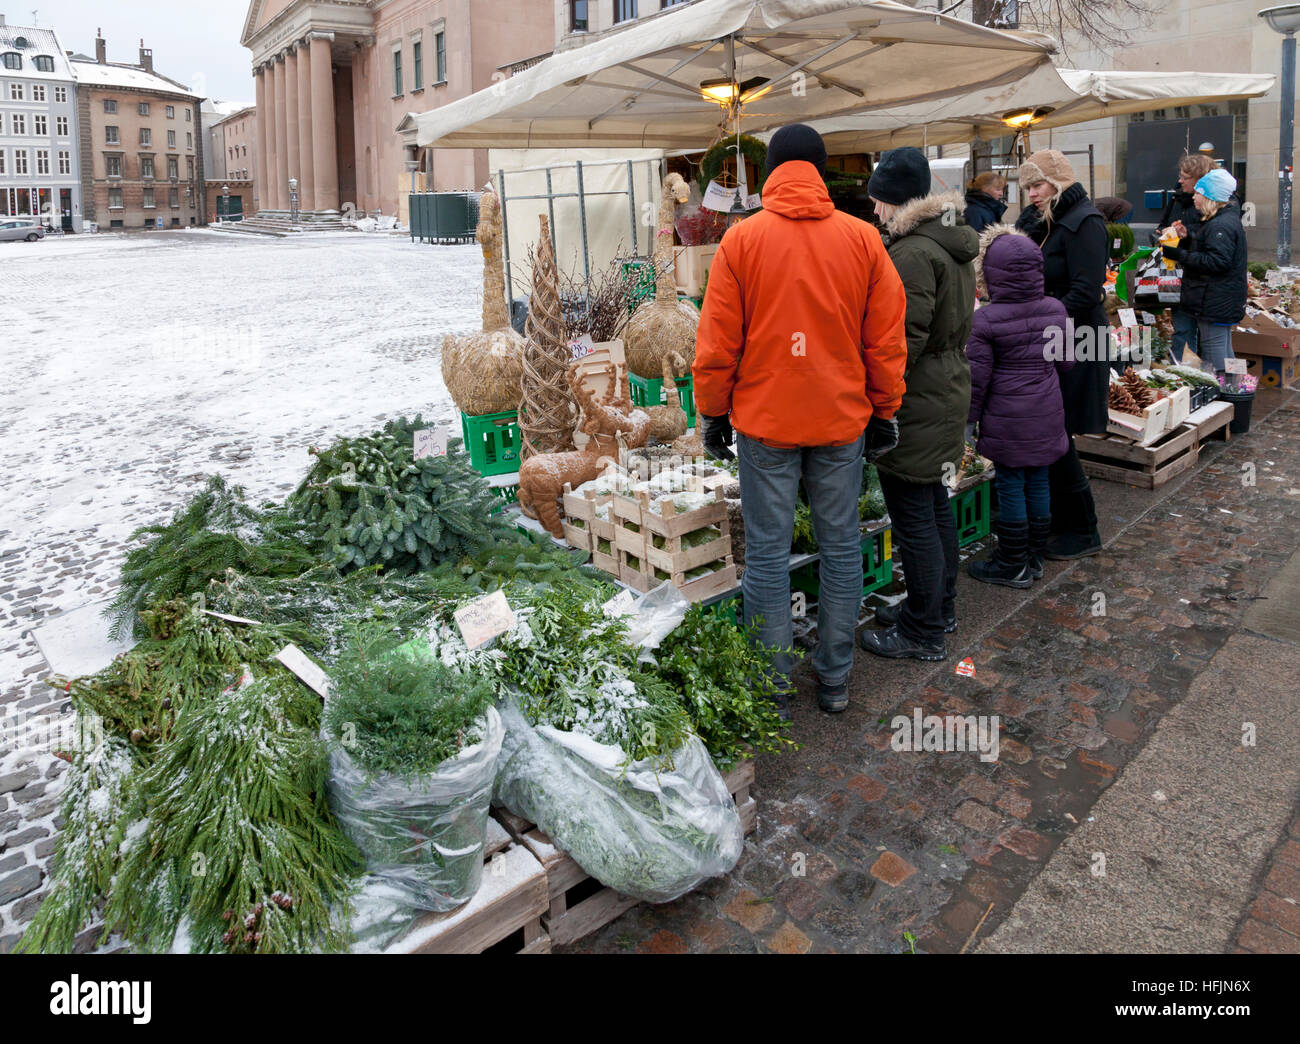 The fruit stall at Nytorv on Strøget in Copenhagen sells Christmas decorative greenery, cones, straw goats, - Stock Image